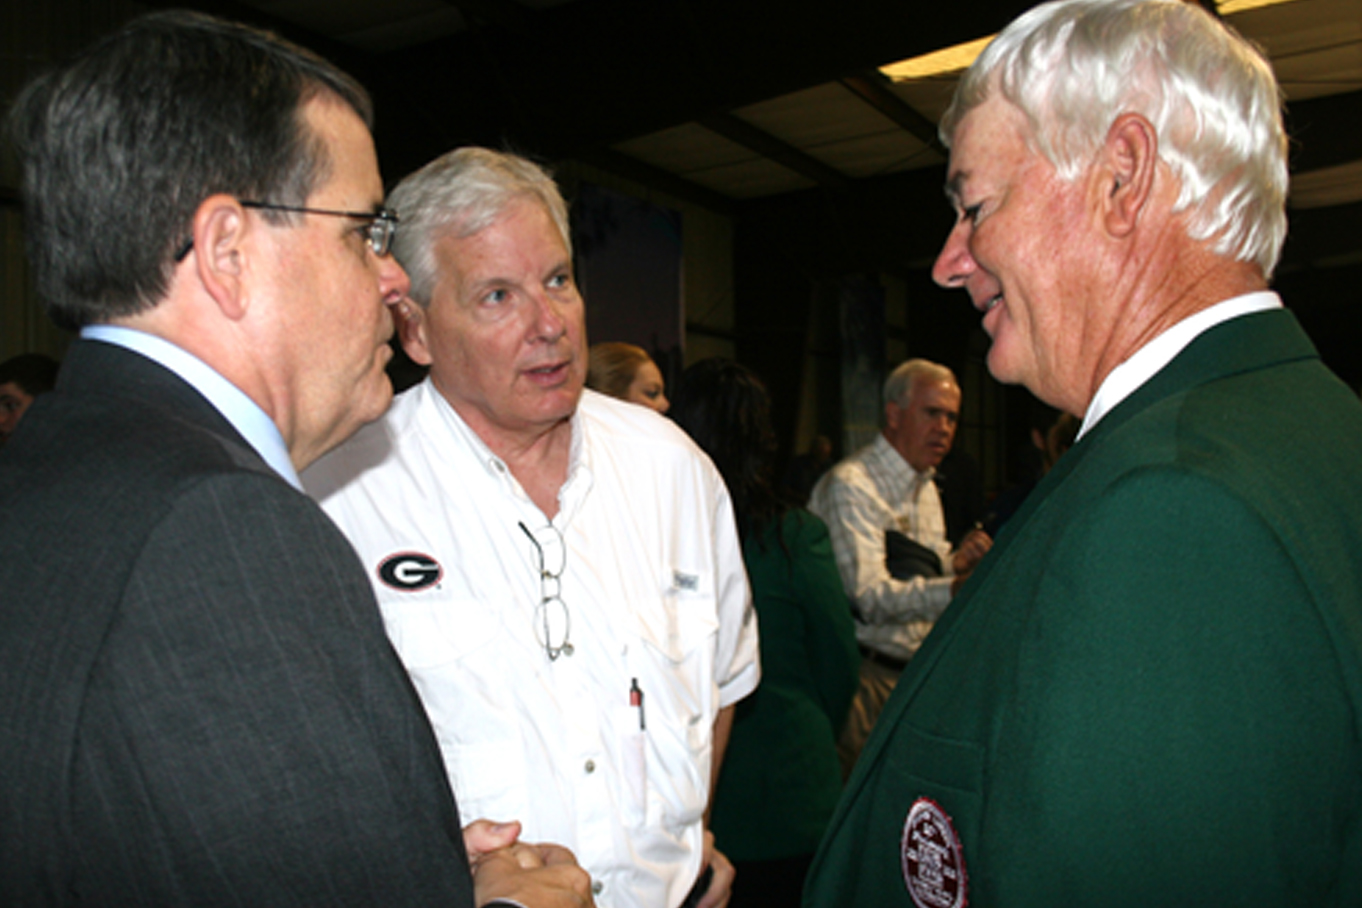 University of Georgia President Jere Morehead talks with Scott Angle (left), dean of the UGA College of Agricultural and Environmental Sciences and Tifton farmer Philip Grimes, who was named the Southeastern Farmer of the Year at the Sunbelt Expo on Tuesday, Oct. 14, 2014.